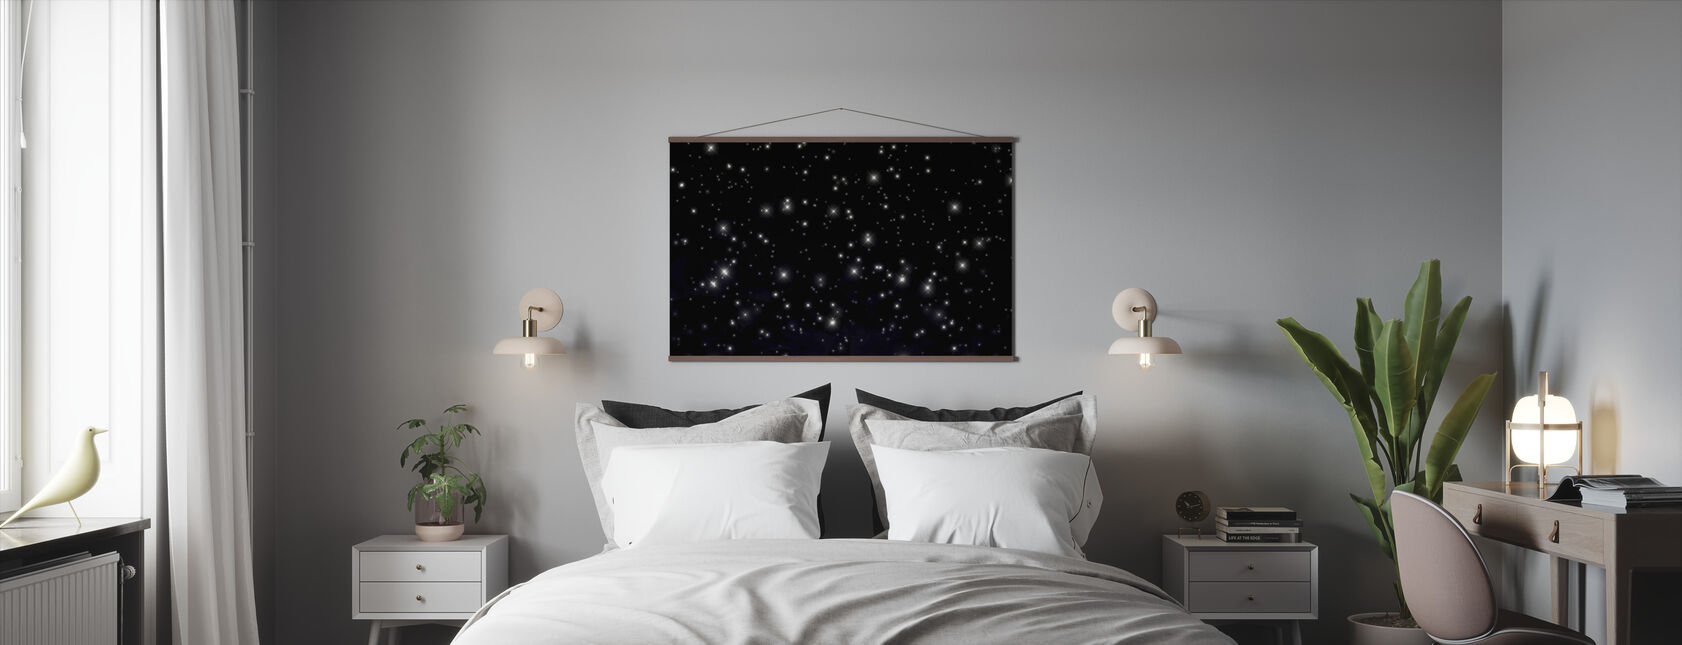 Starry Space - Poster - Bedroom